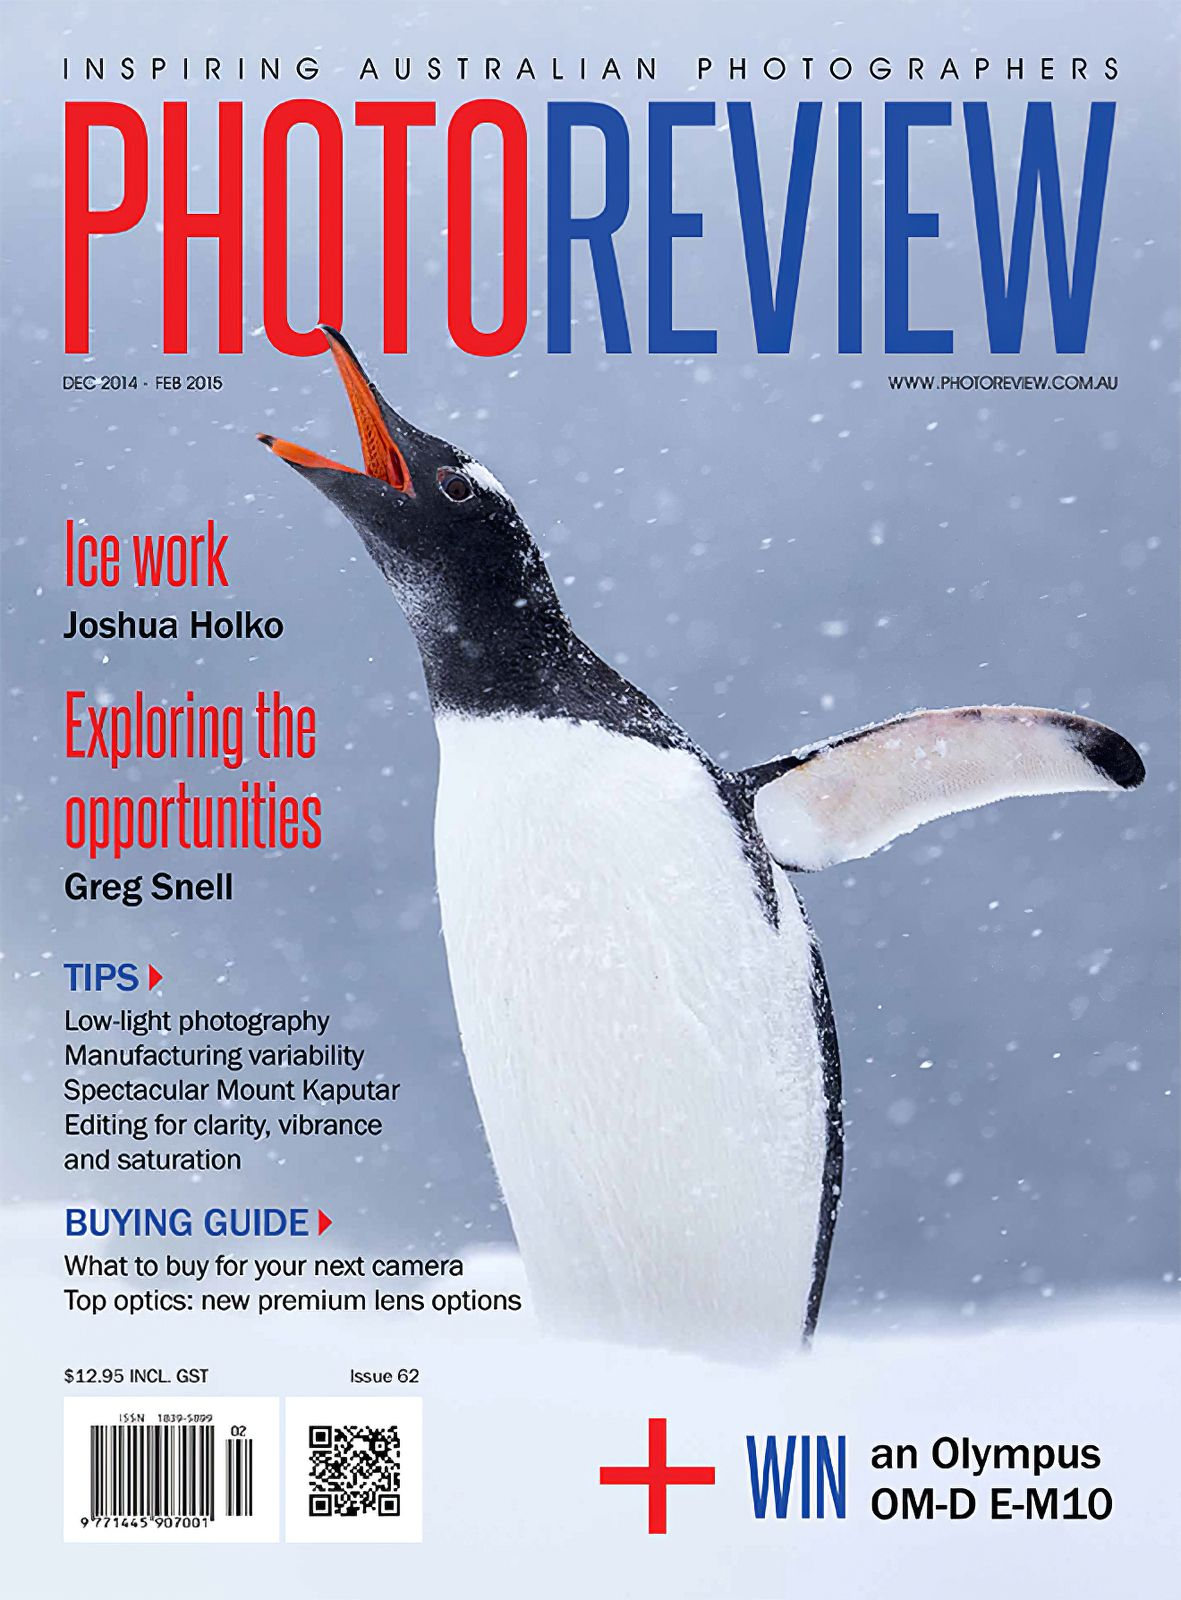 Cover photograph by Joshua Holko